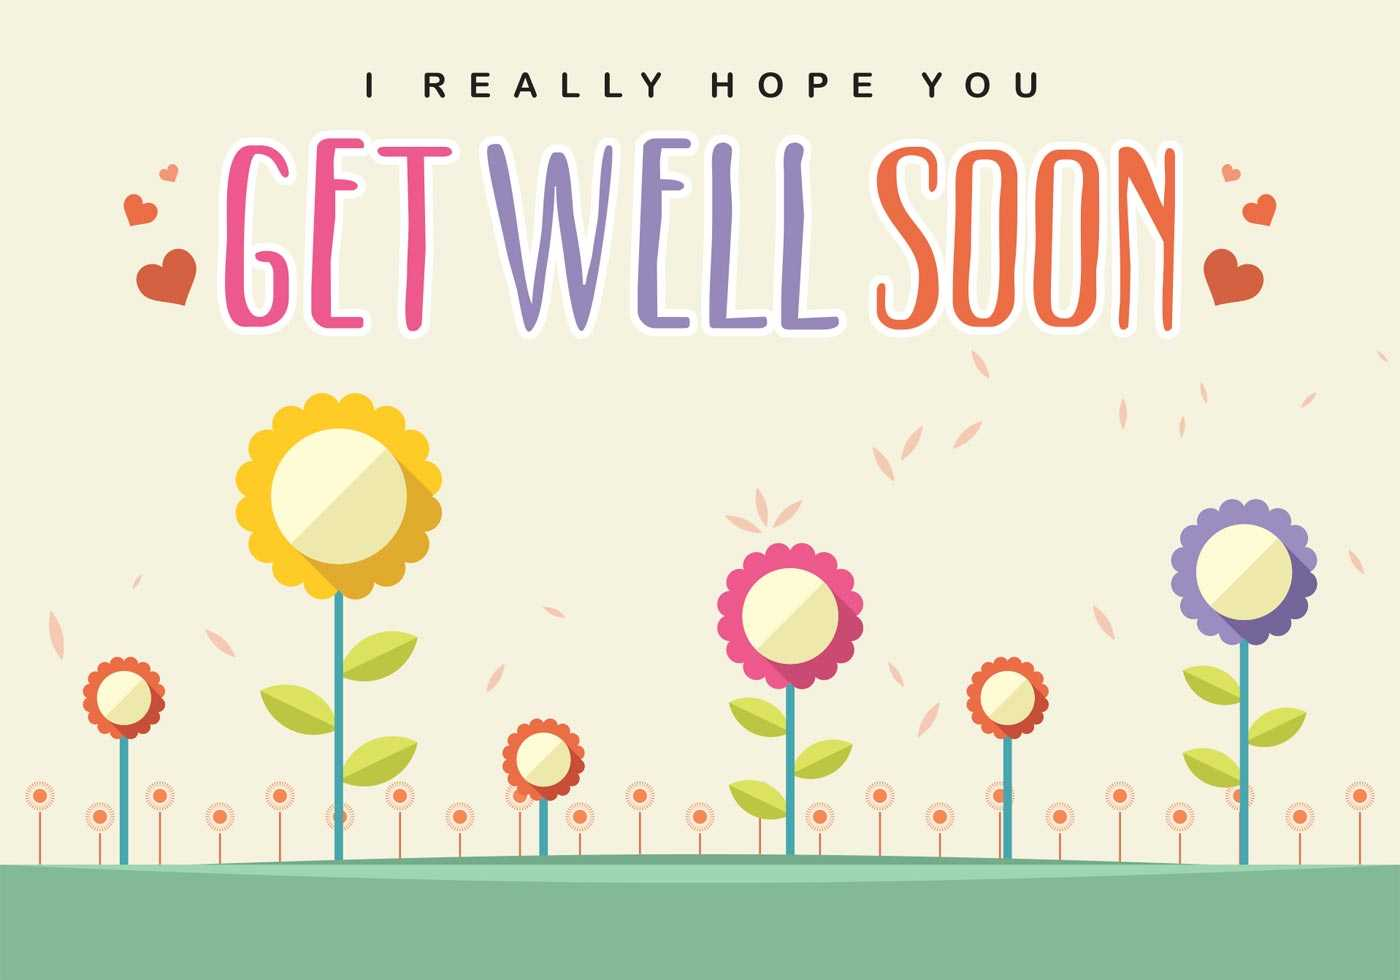 Get Well Soon Card Vector - Download Free Vectors, Clipart Throughout Get Well Card Template